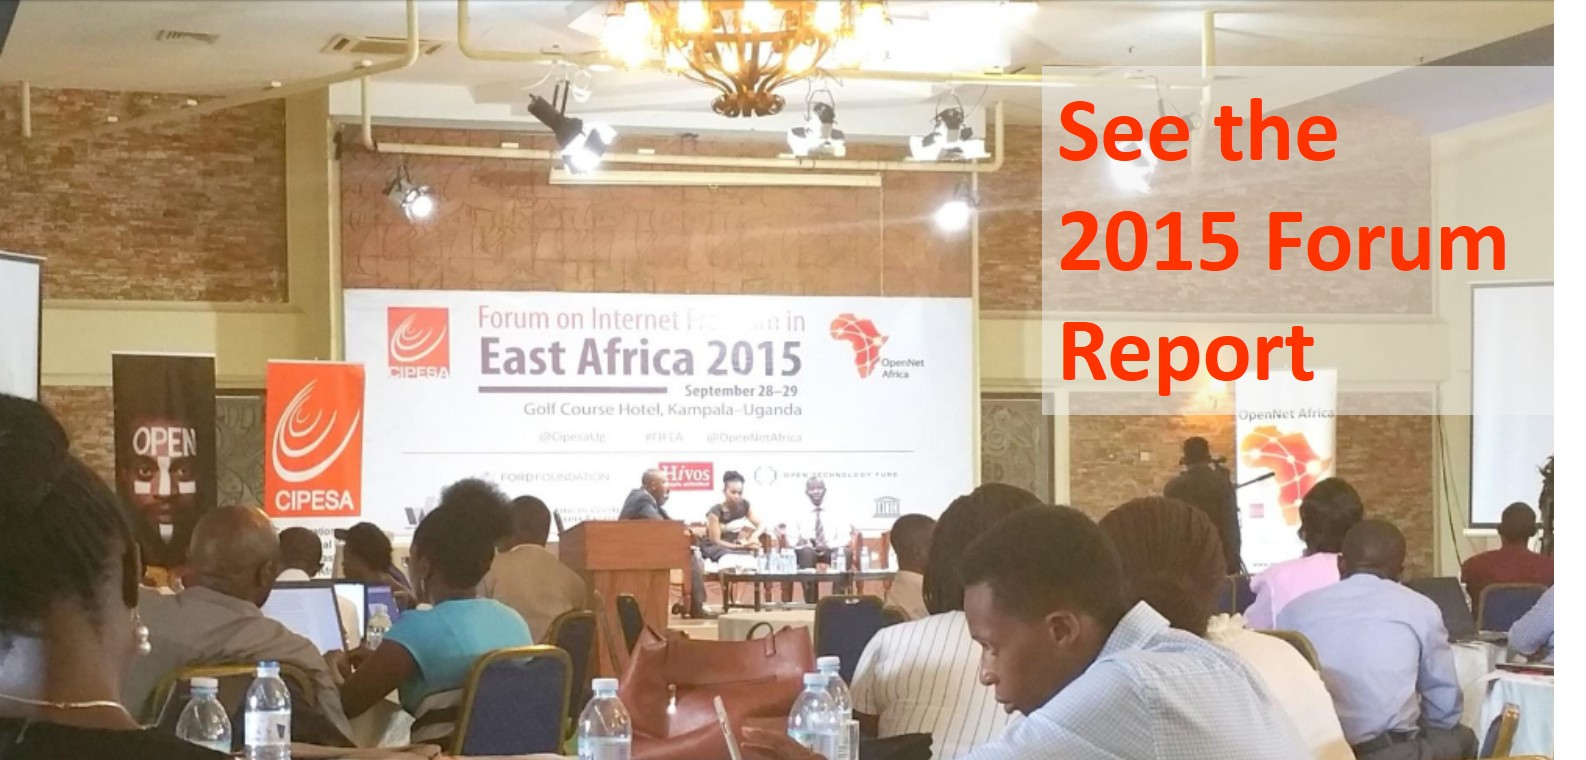 See Forum Report 2015